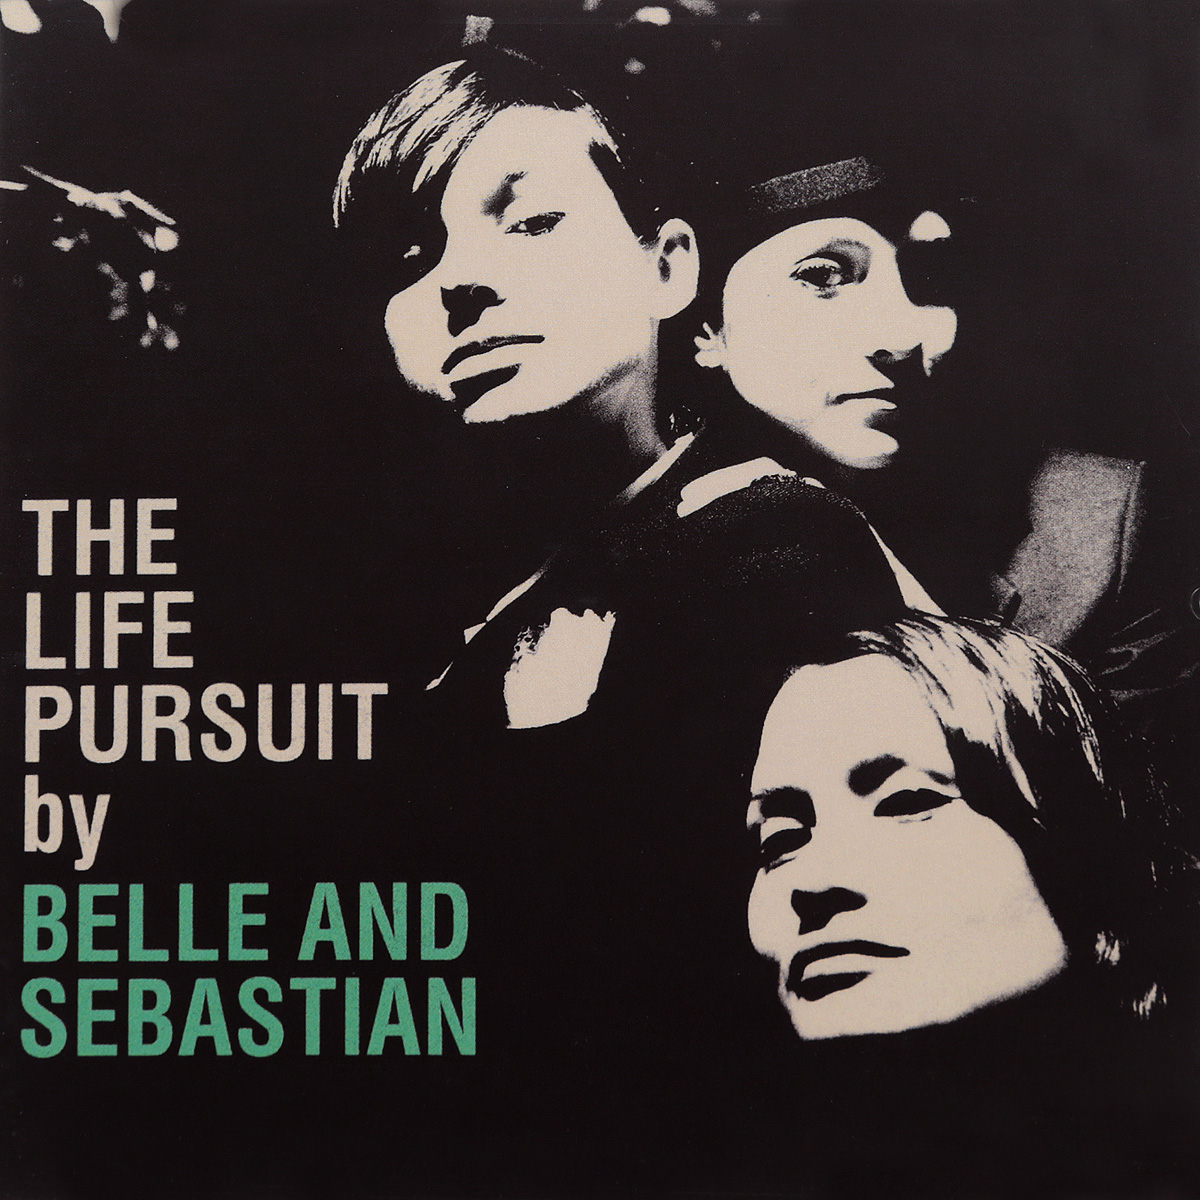 Belle & Sebastian And Sebastian. The Life Pursuit